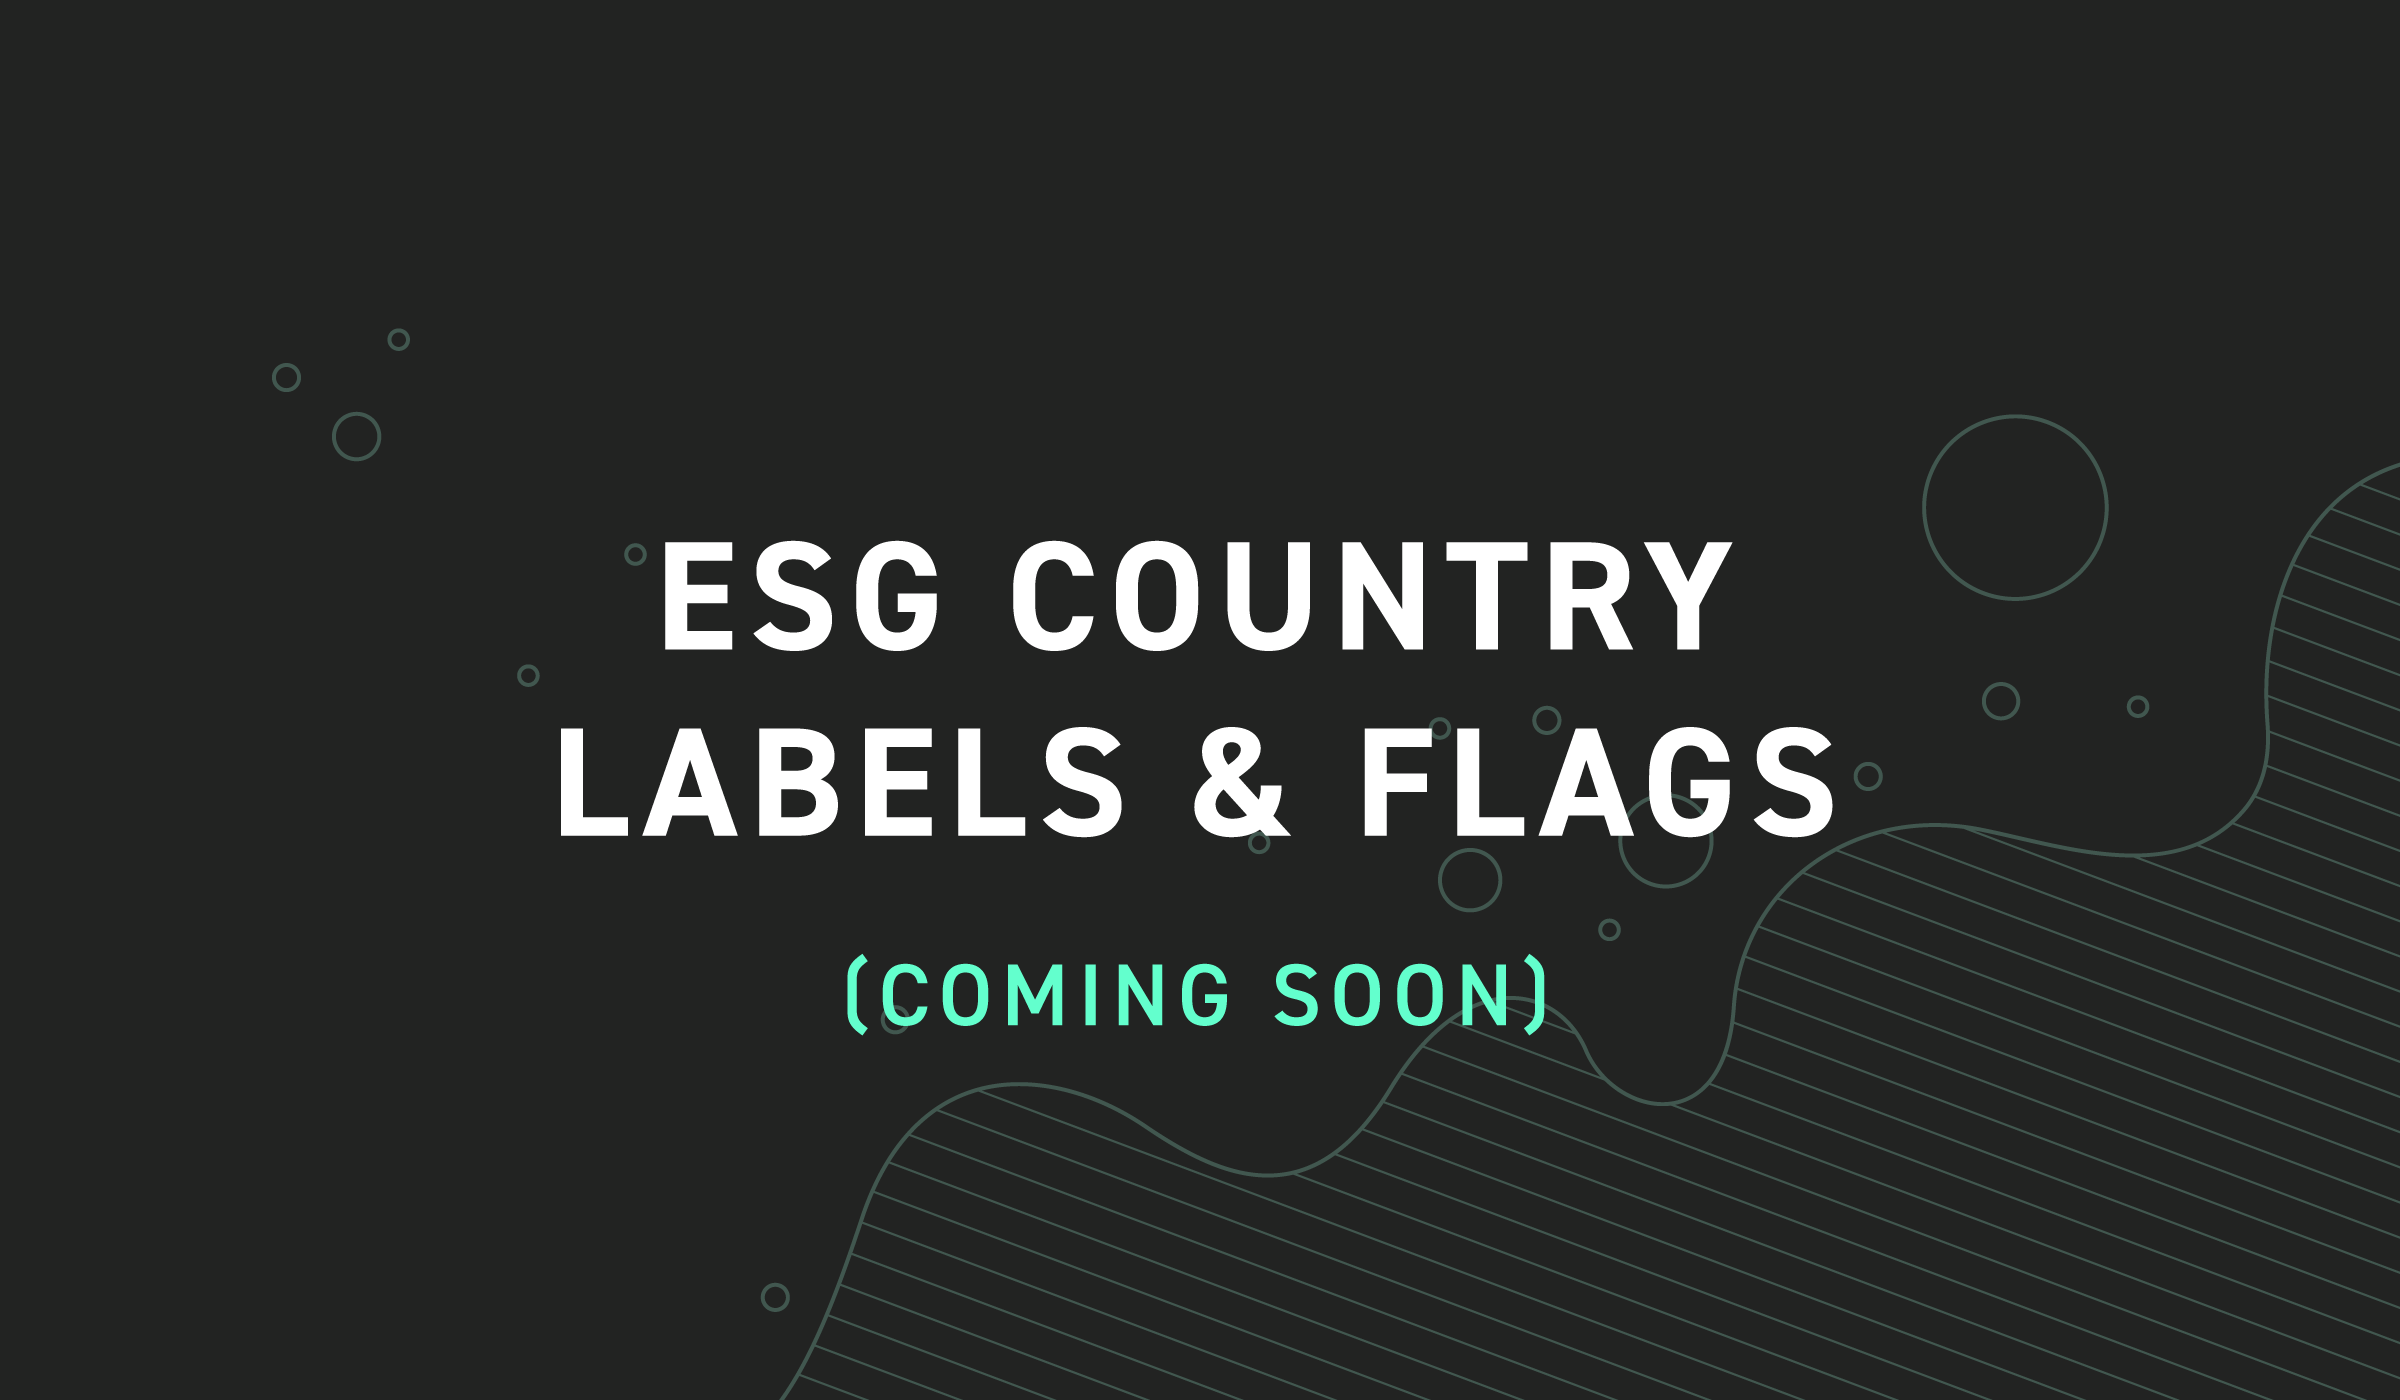 ESG Country labels & flags